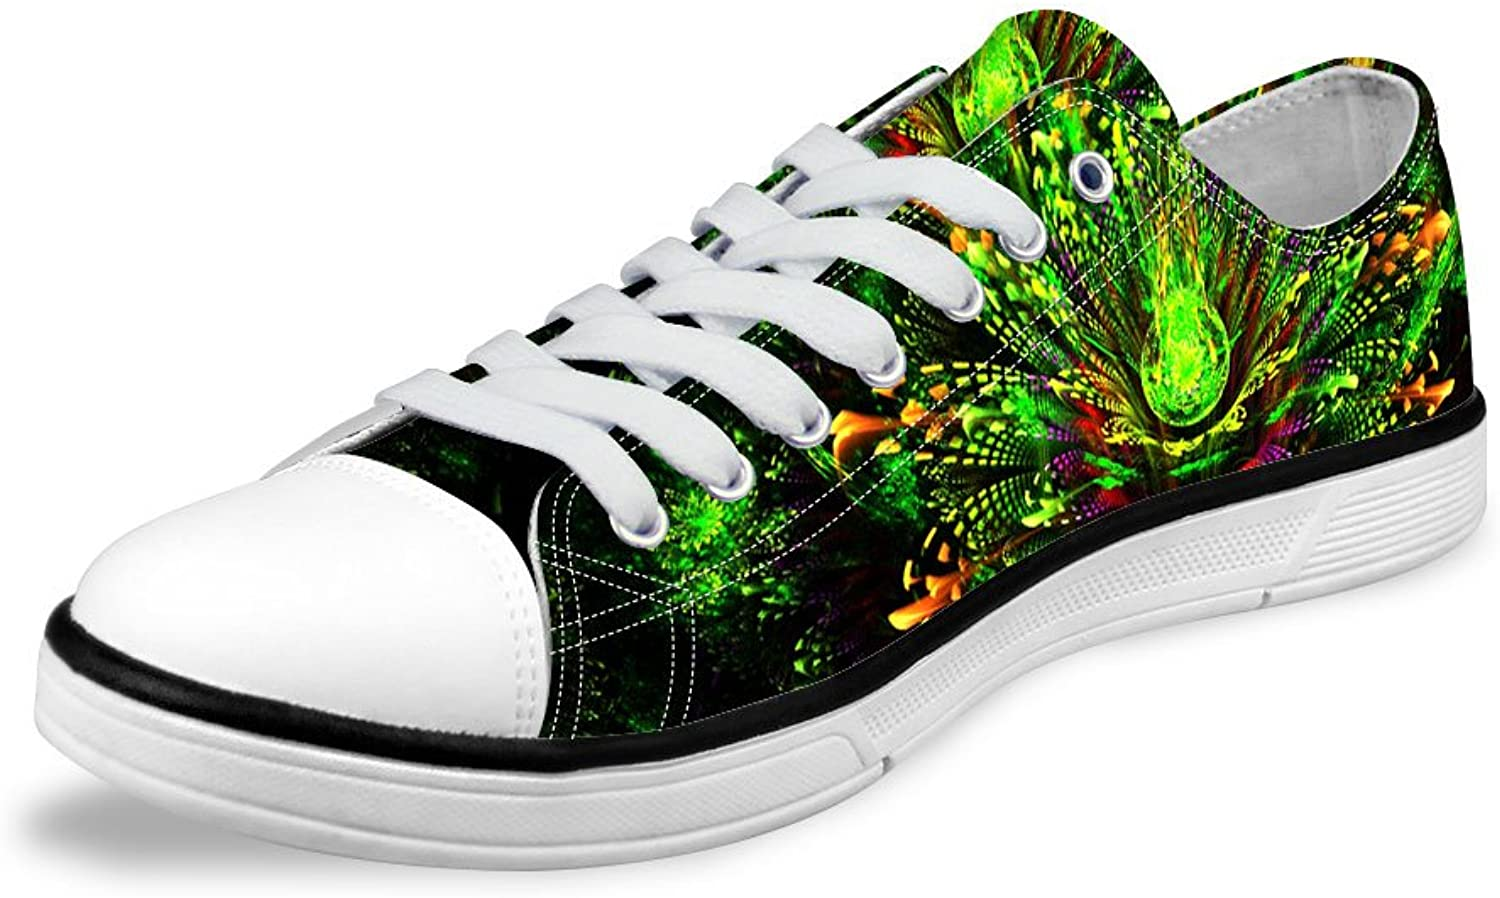 FOR U DESIGNS Glitter Green Lightweight Comfort Women's Flat Canvas shoes Lace Up US 8